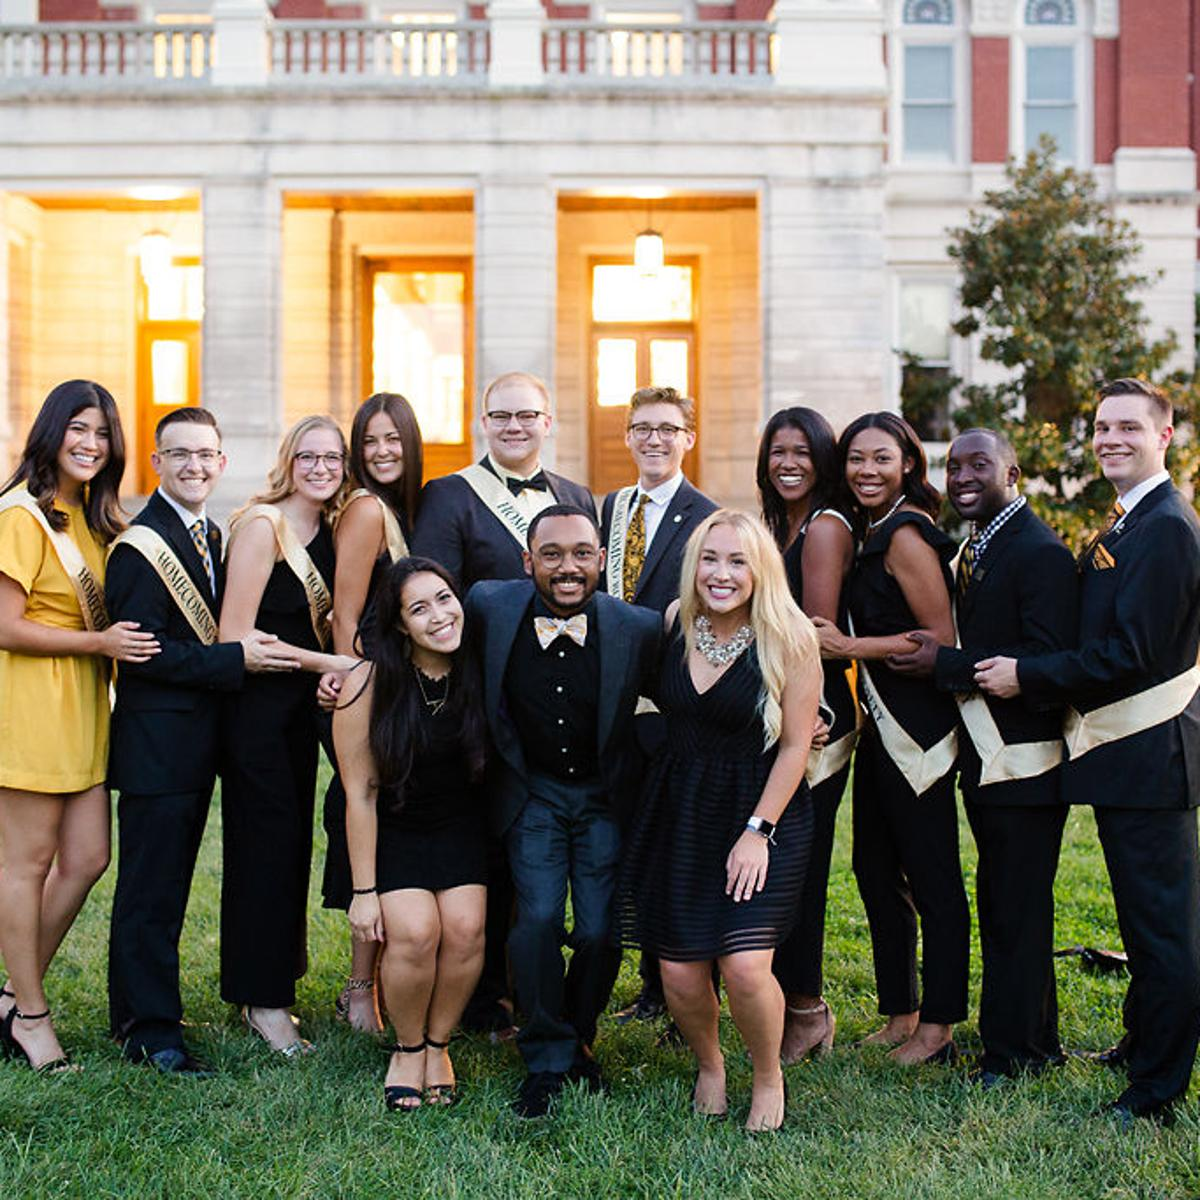 Meet The 10 Homecoming Royalty Candidates For 2019 Homecoming